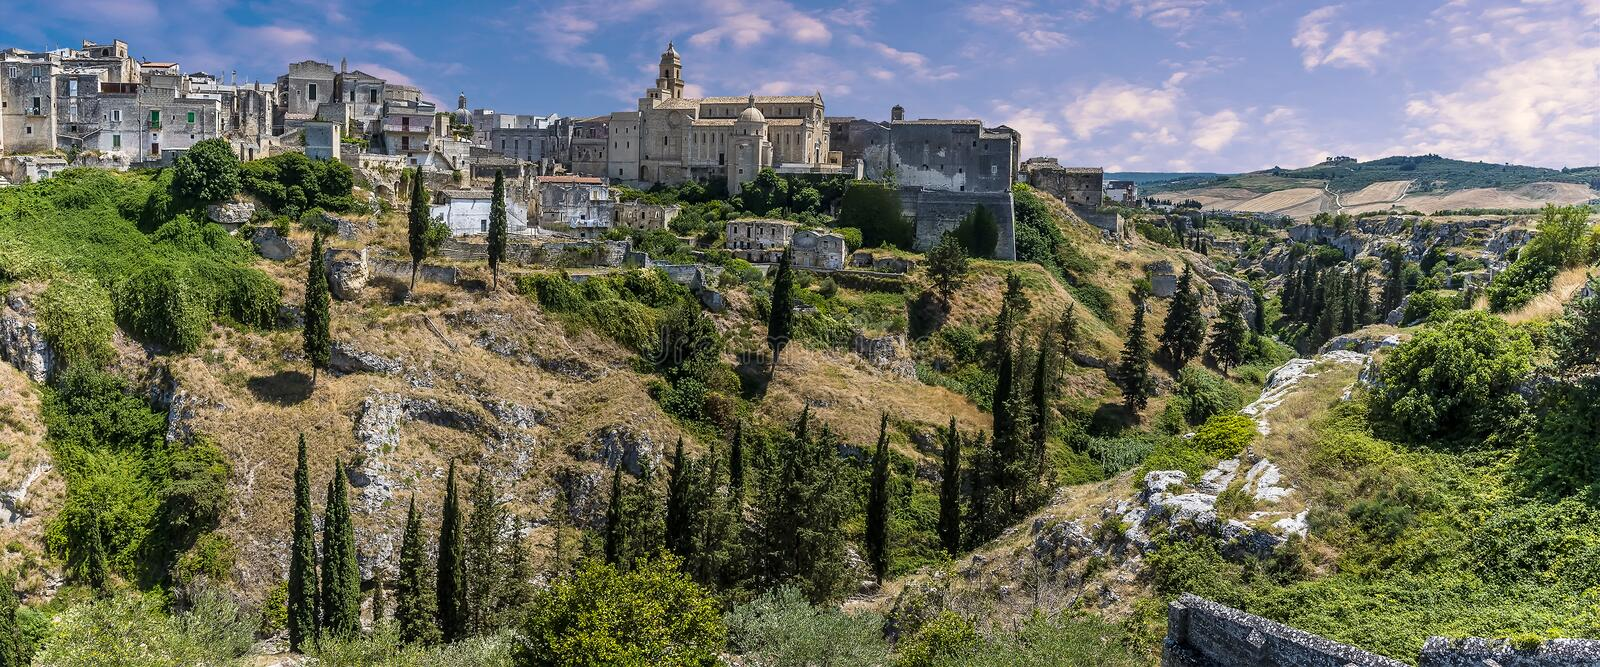 Gravina in Puglia, Italy with the cathedral visible in the old town royalty free stock photography